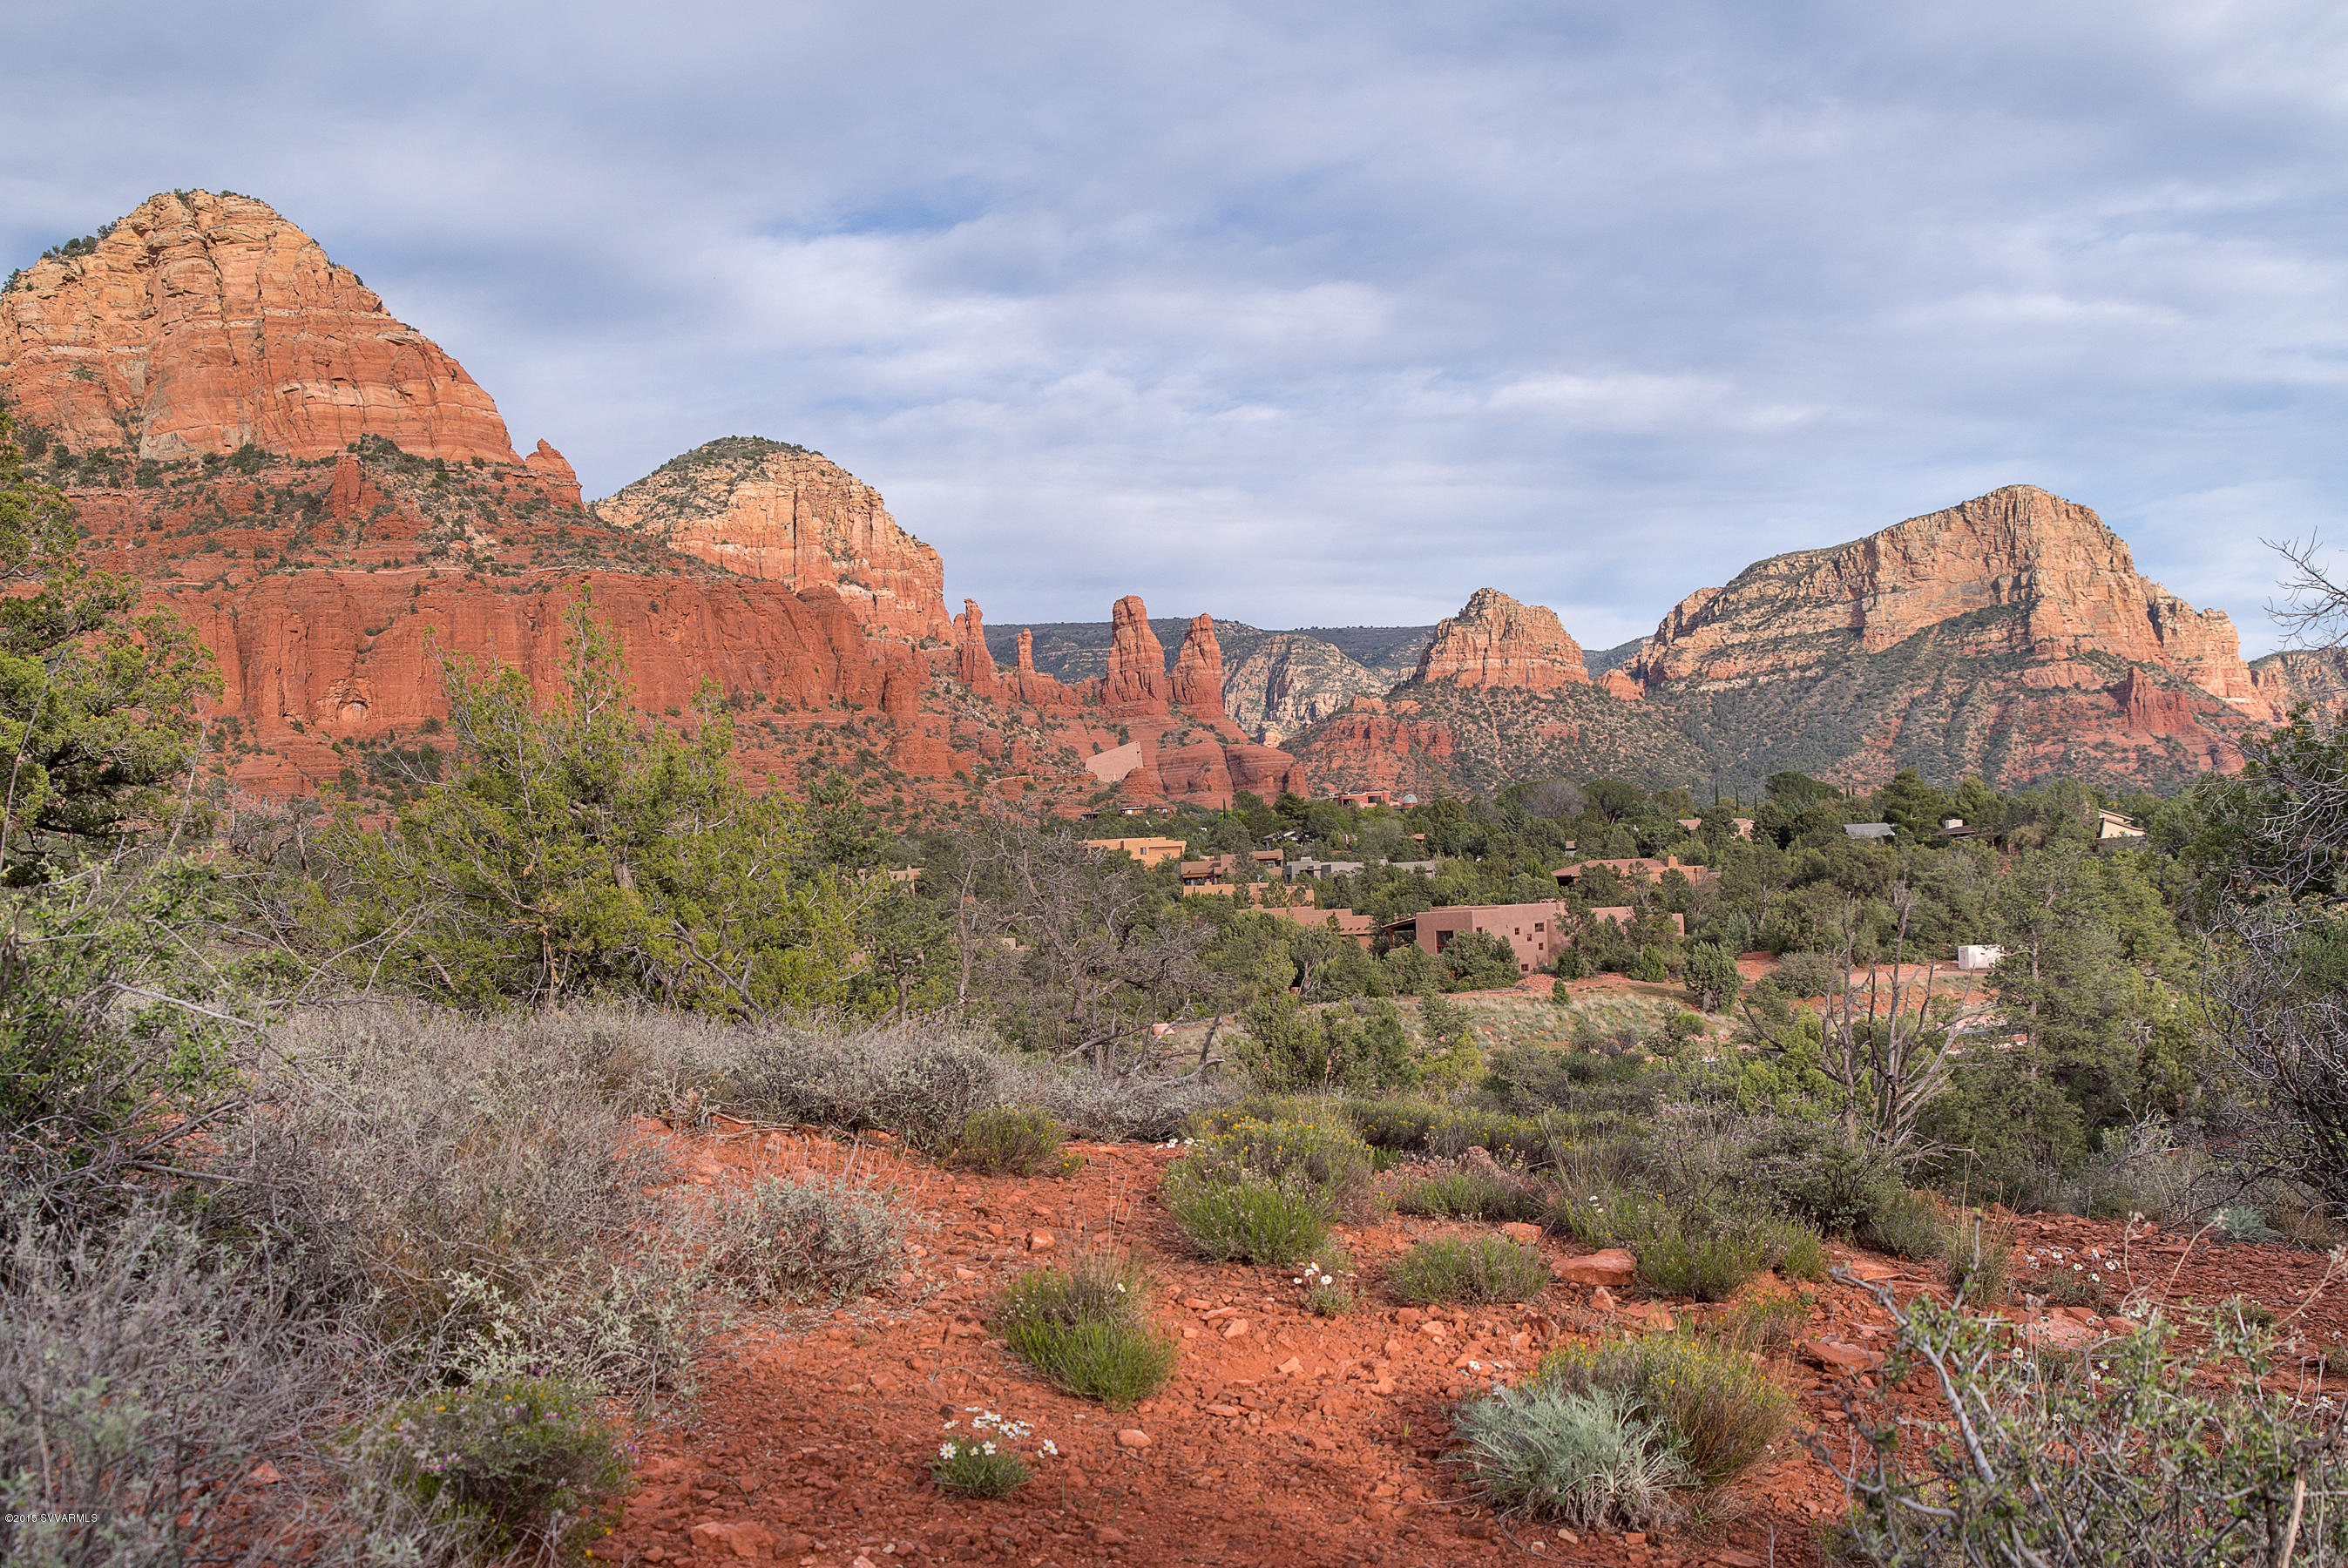 808 W Chapel, Sedona, Arizona